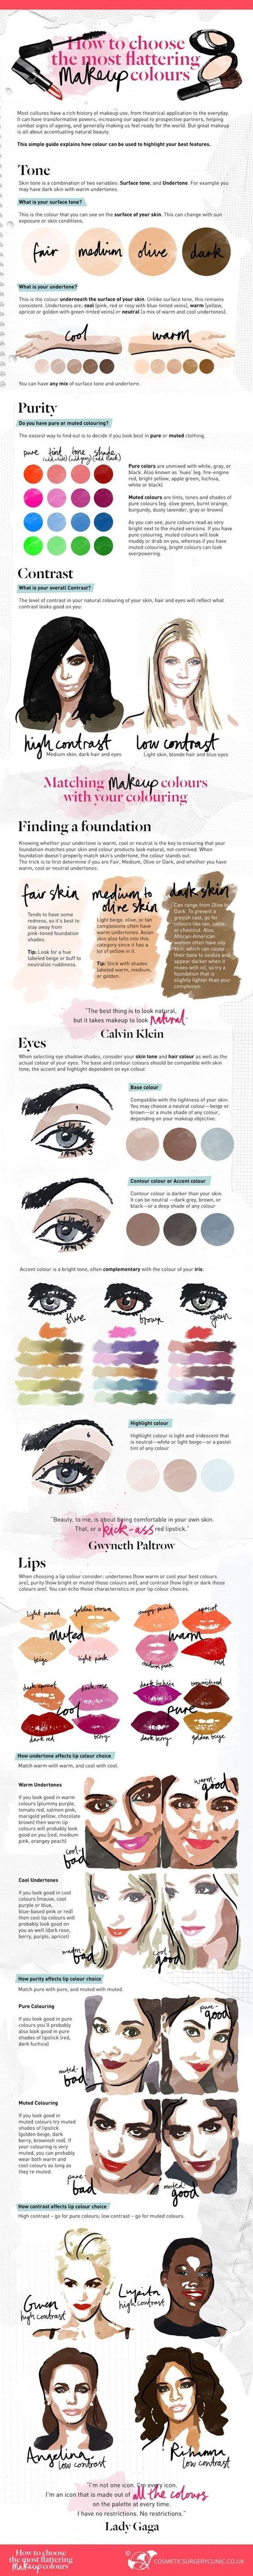 Best 25 eye color charts ideas on pinterest baby eye color 16 makeup charts that will turn you into a makeup artist nvjuhfo Image collections